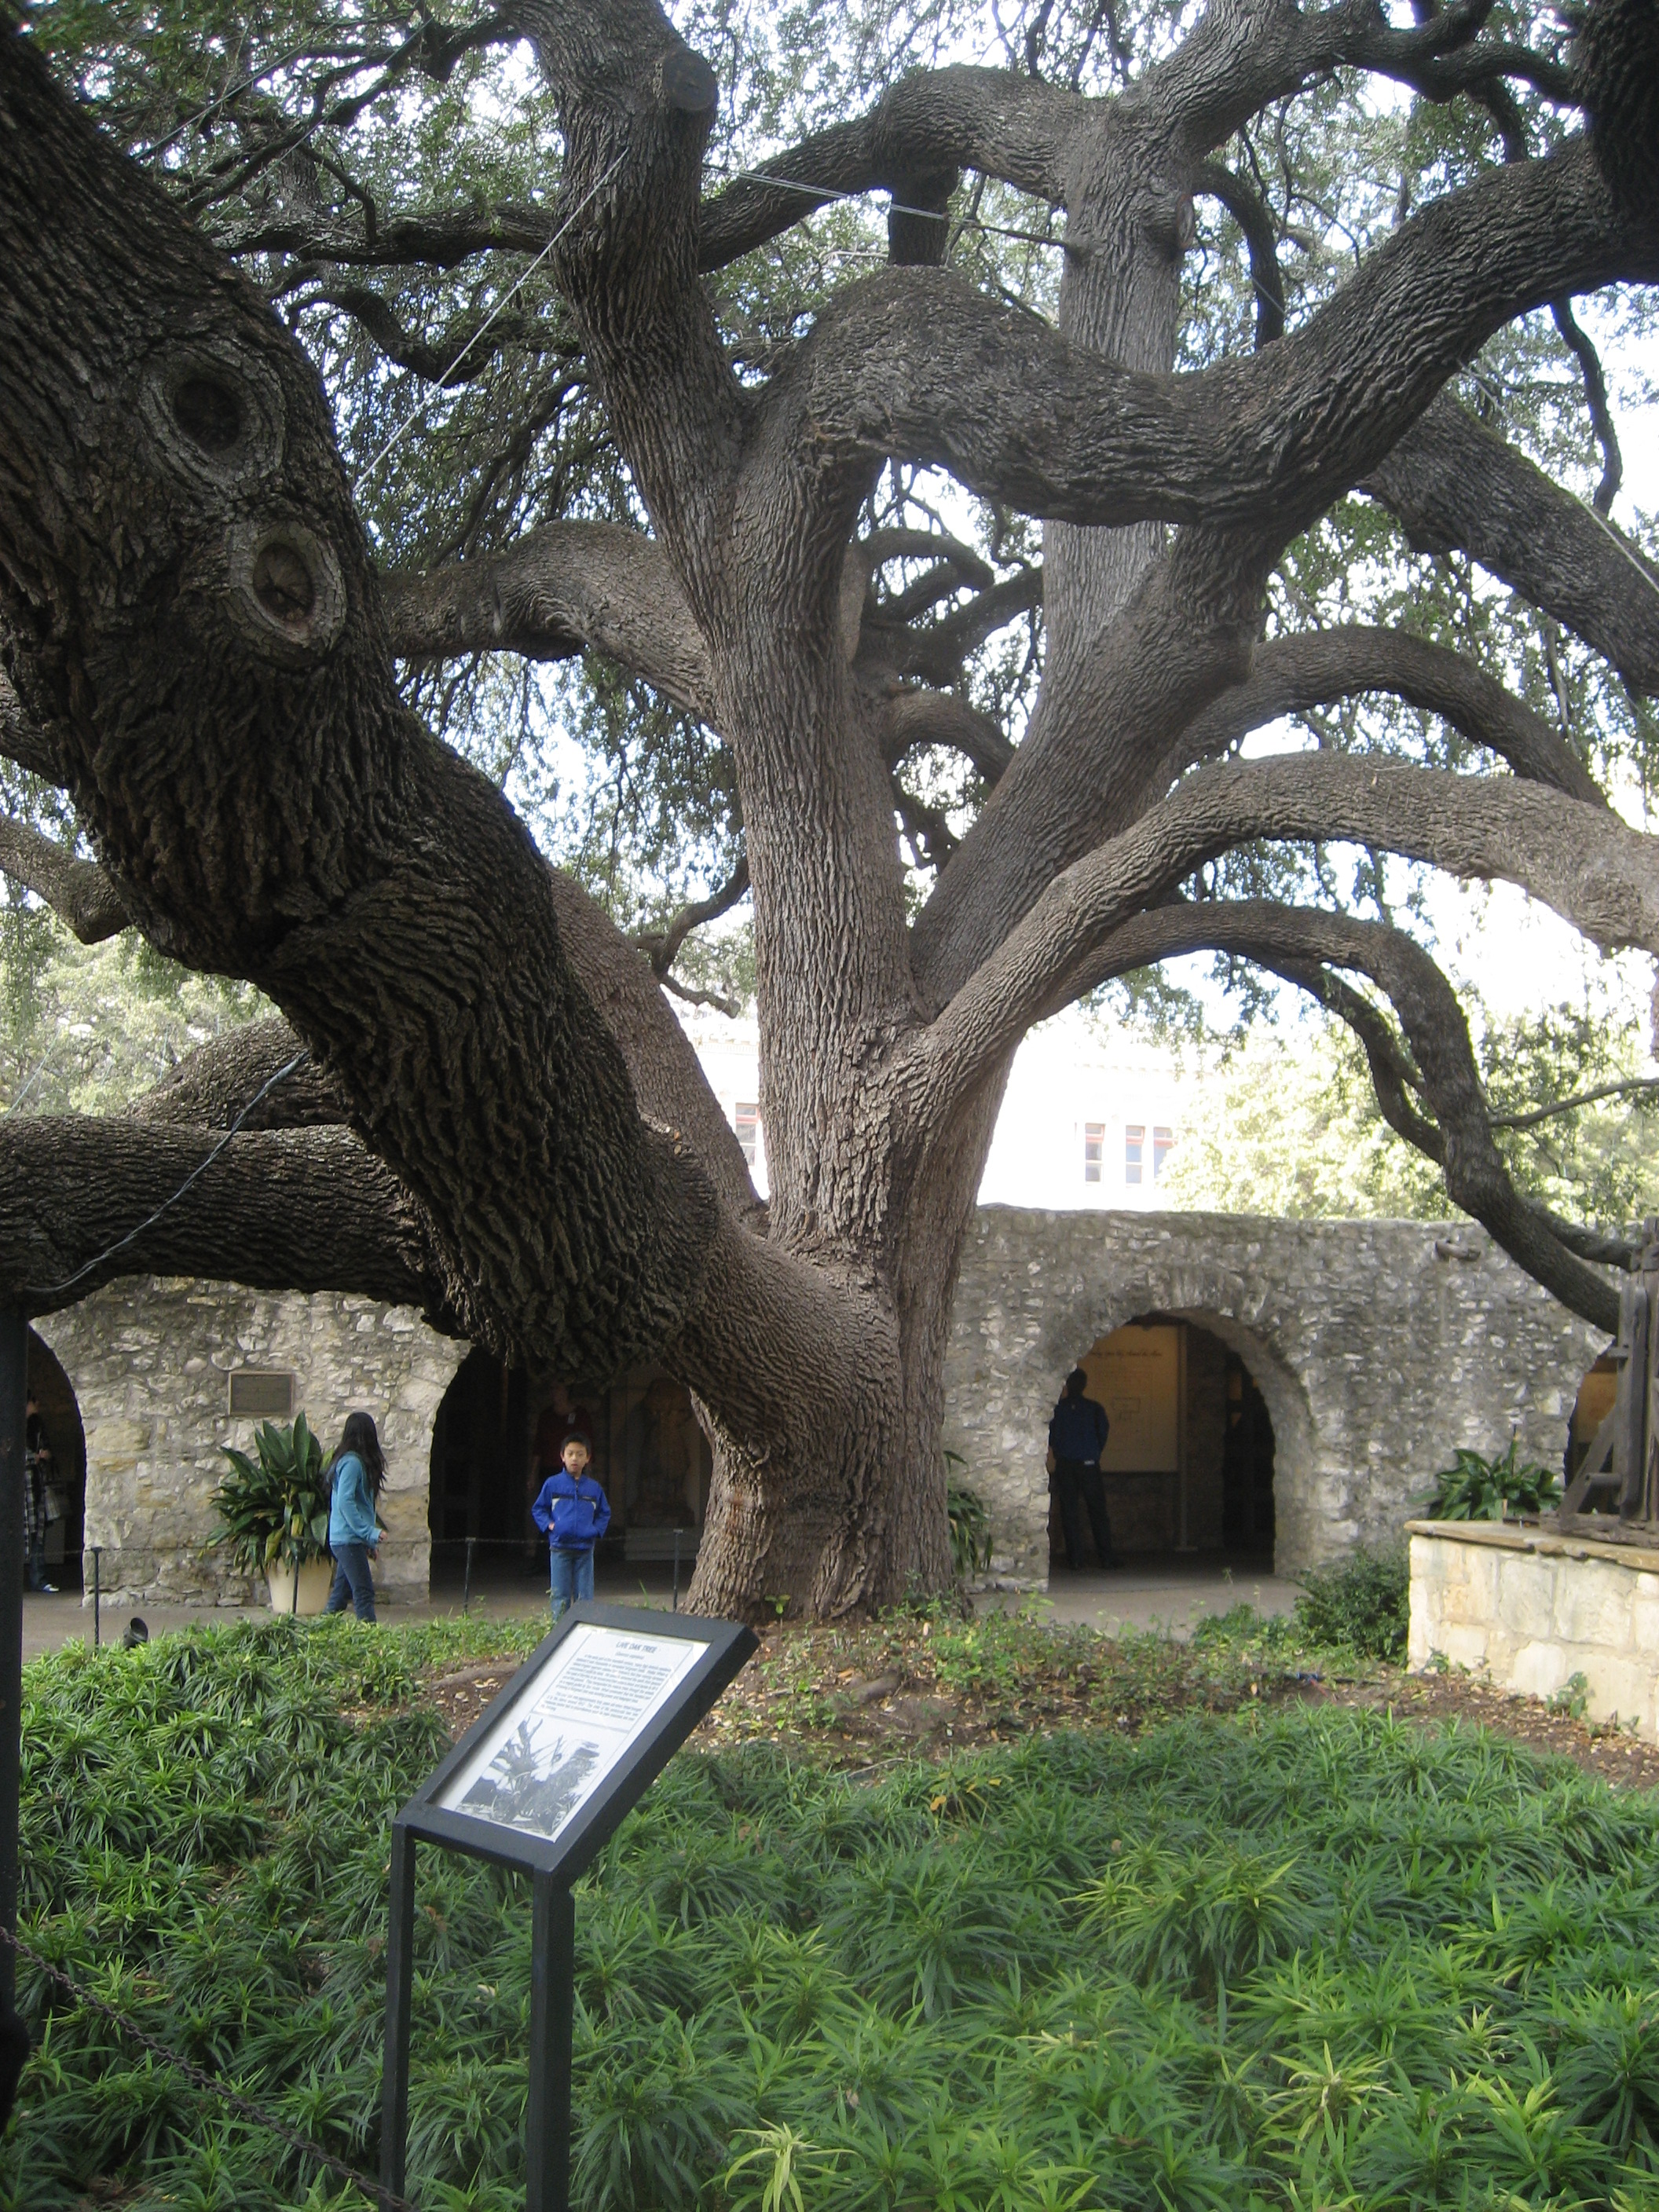 Alamo courtyard with cool tree!